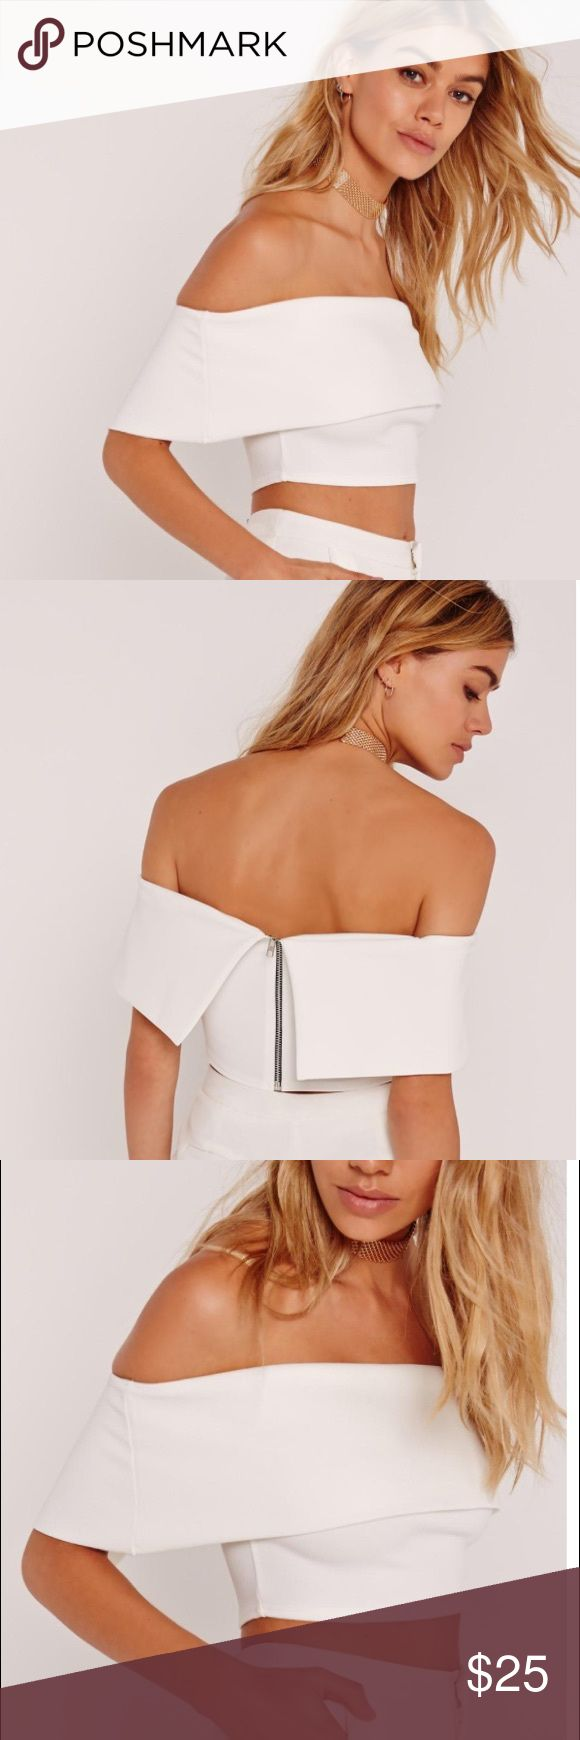 """Missguided Bardot Crop Top all white er-thang! this zip back beaut is the perfect mix and match piece for the weekend.  approx length 24cm/9.5"""" (based on a uk size 8 sample)   95% polyester 5% elastane Missguided Tops Crop Tops"""